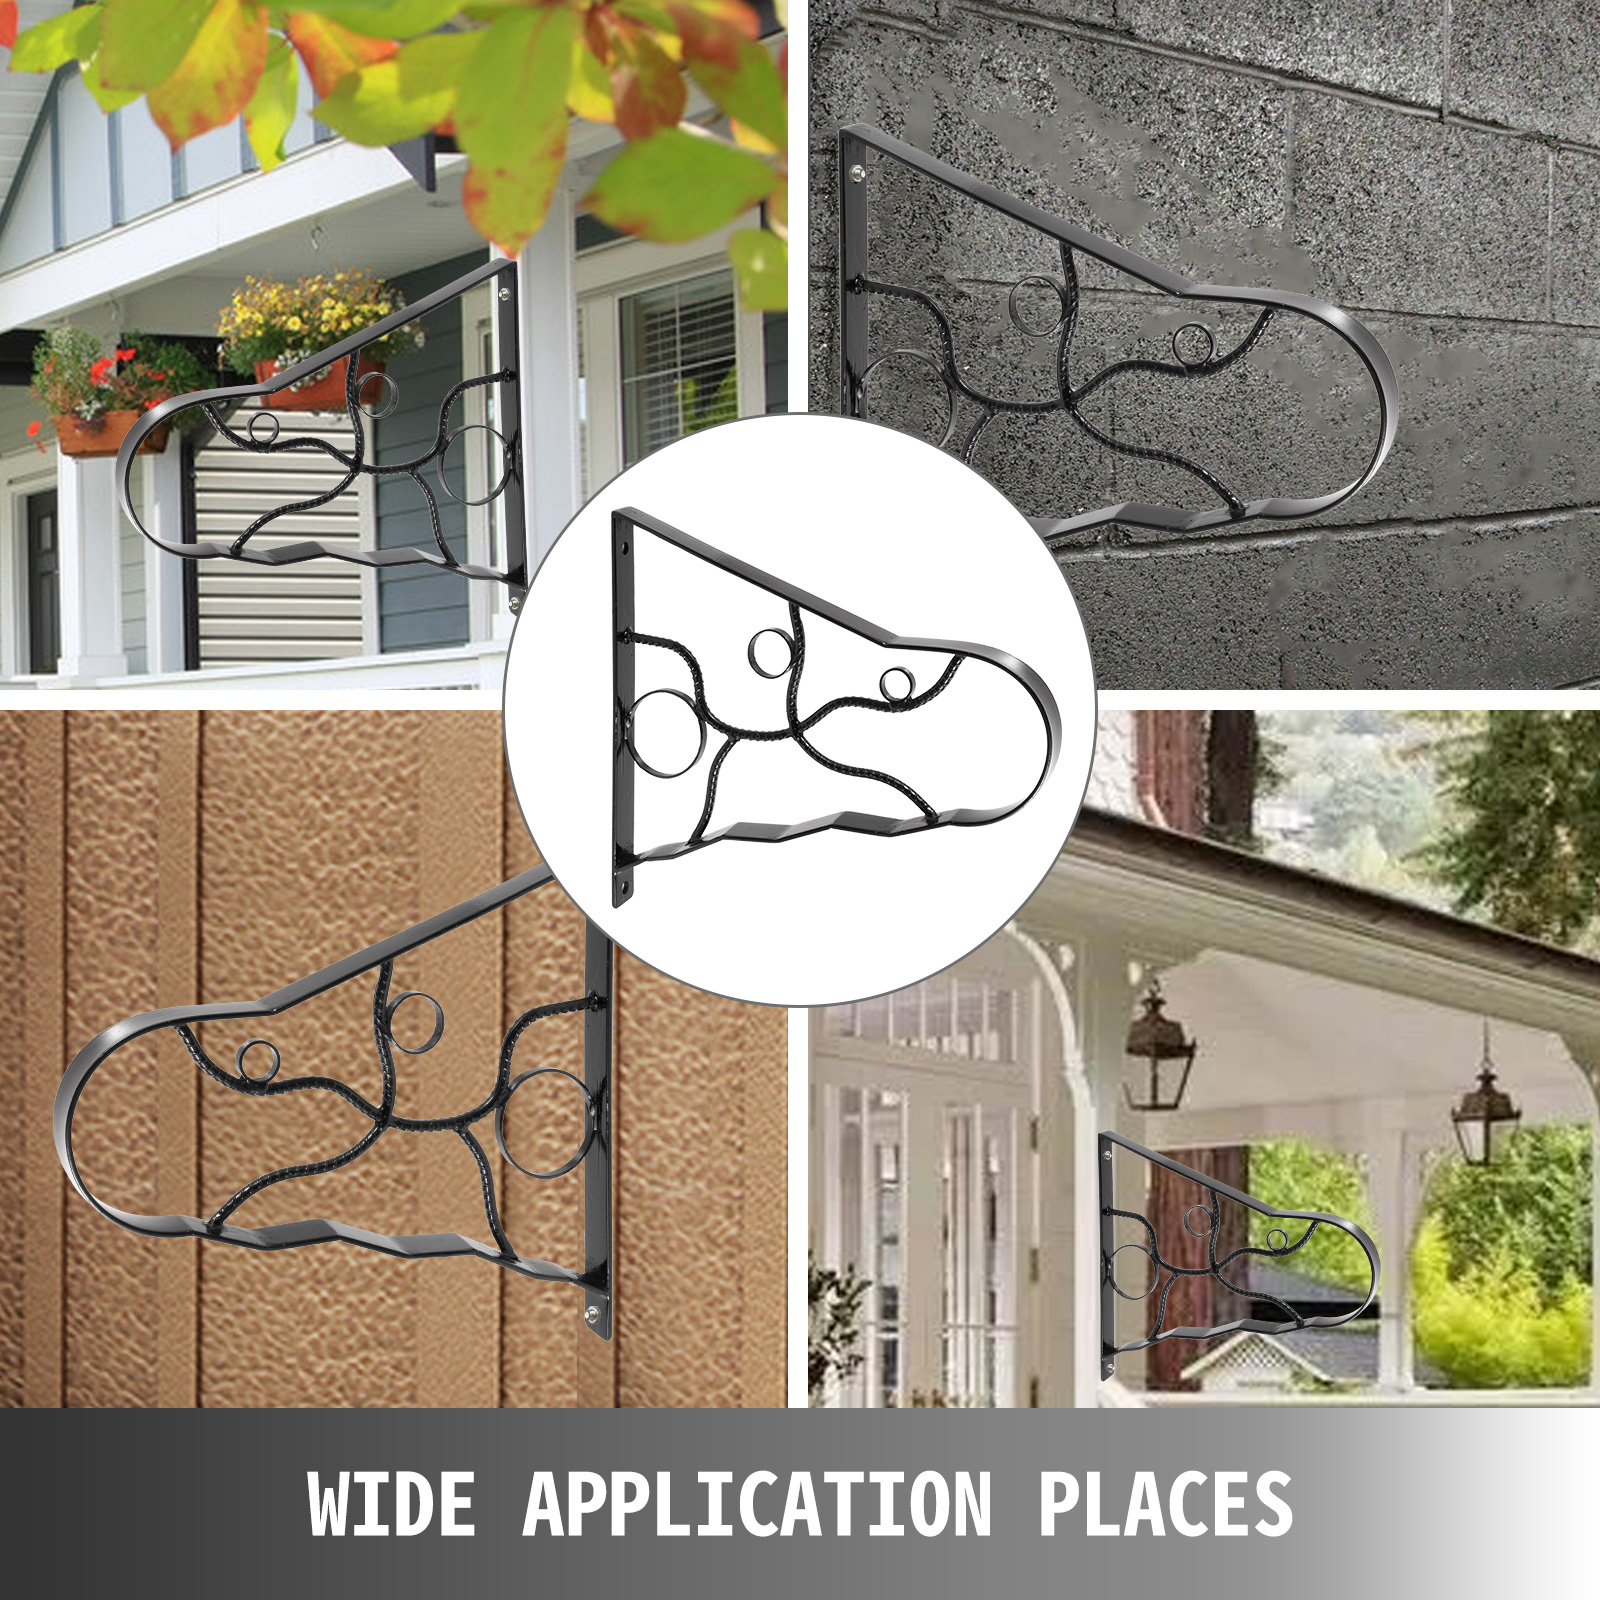 Handrails-for-Outdoor-Step-Wrought-Iron-Handrail-20-034-Length-Porch-Deck-Railing thumbnail 67